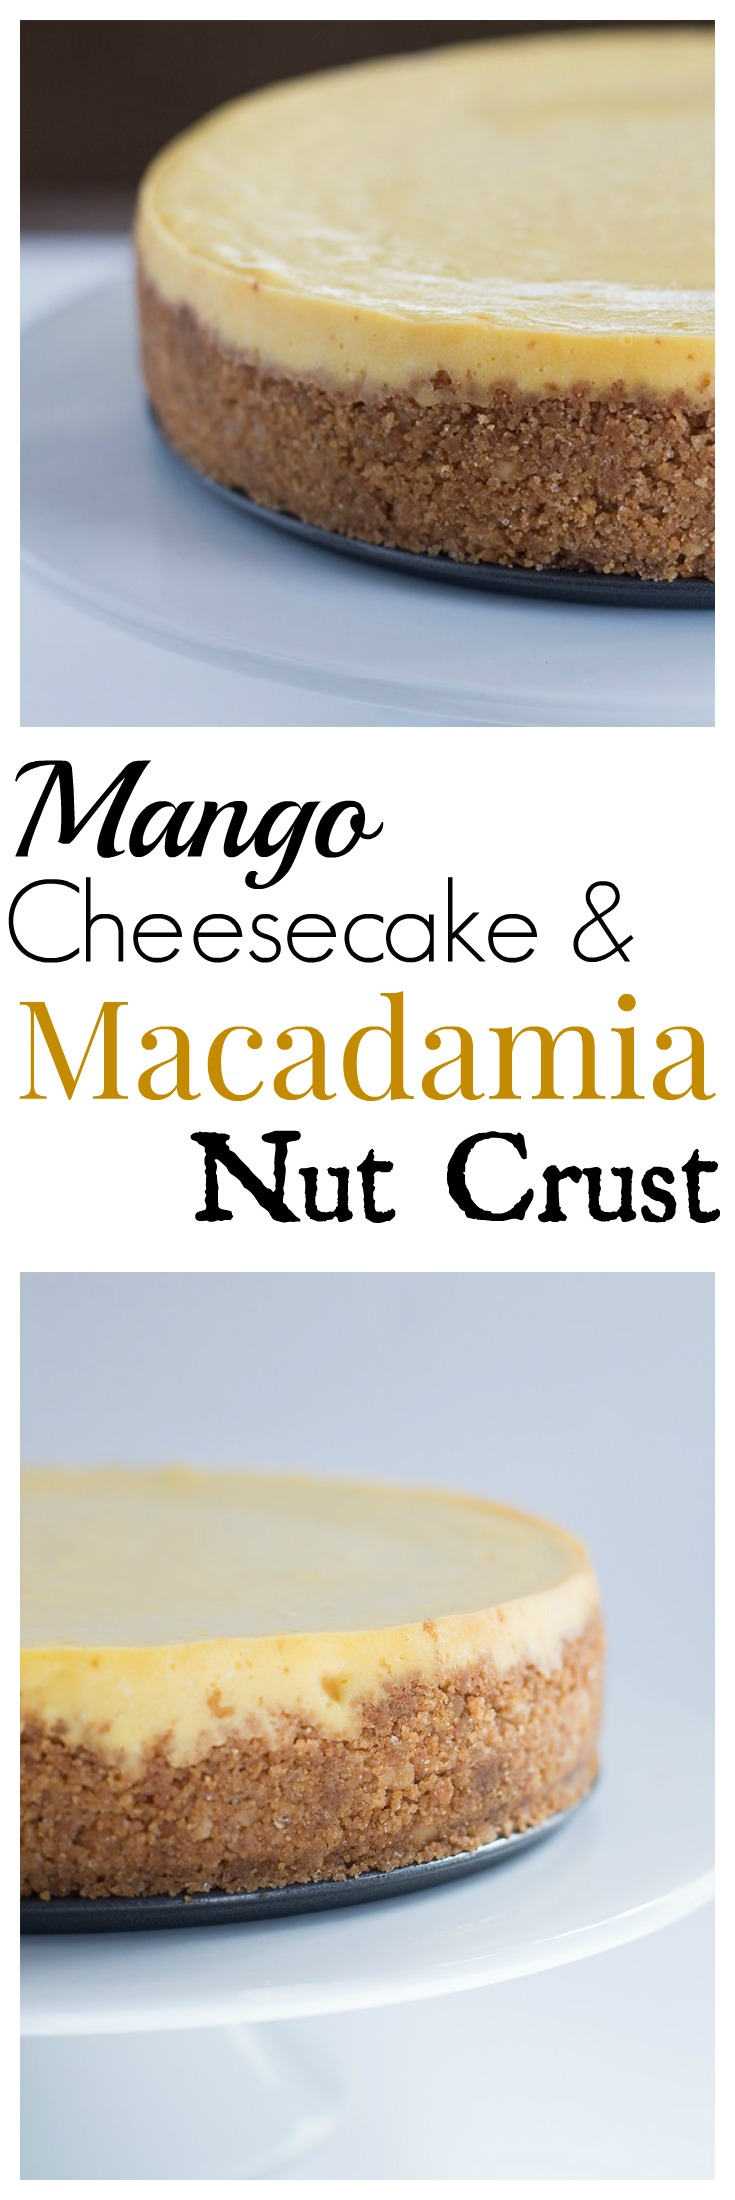 Creamy Mango Cheesecake with a Crunchy Macadamia Nut Crust